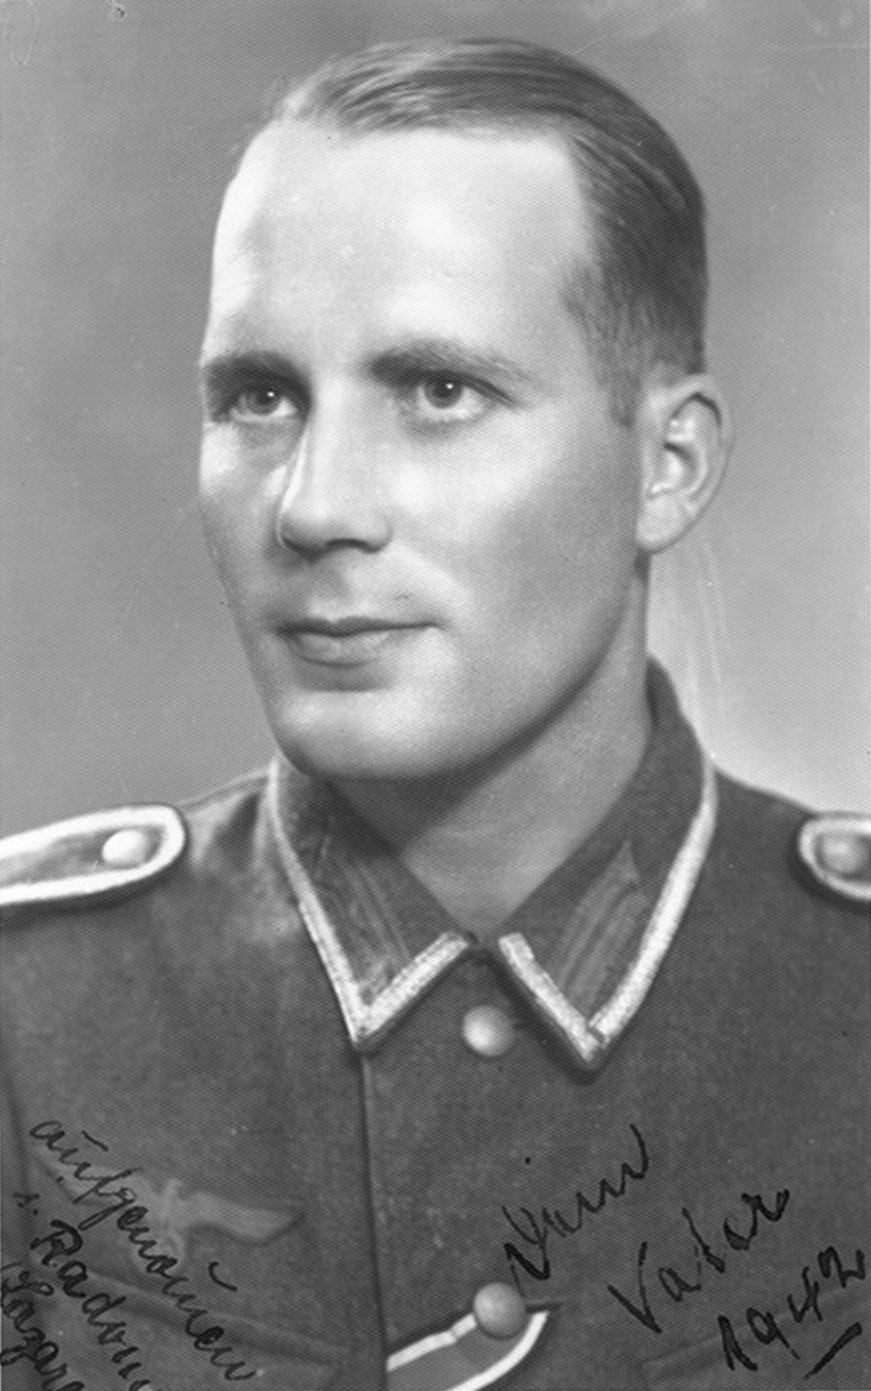 After being promoted to Platoon Leader, June 1942.